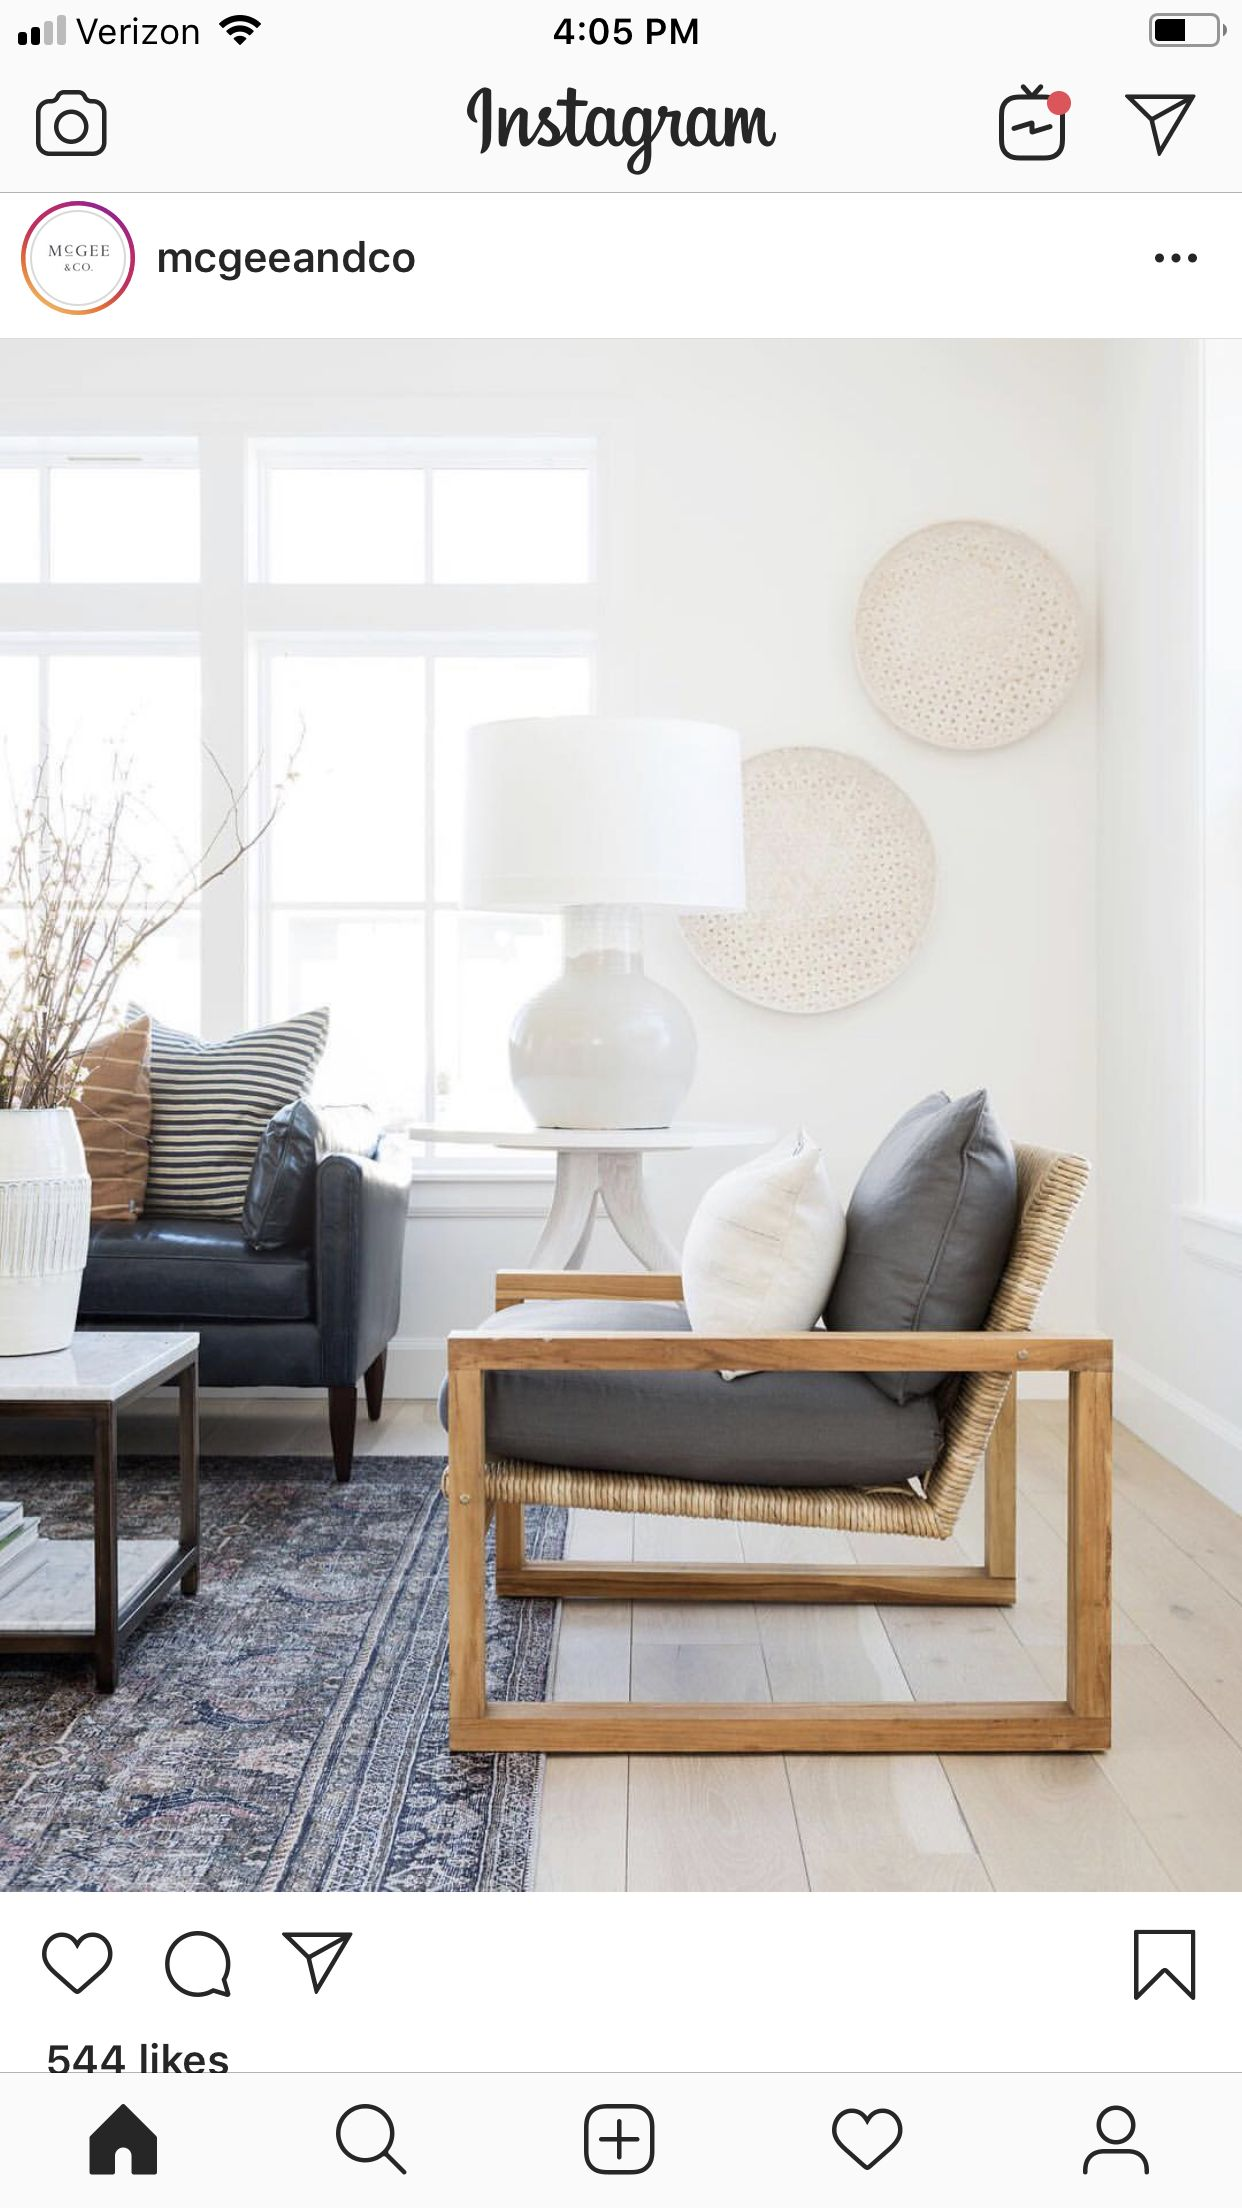 Pin by carla zinman on DP Living Room in 2019 | Home decor ...